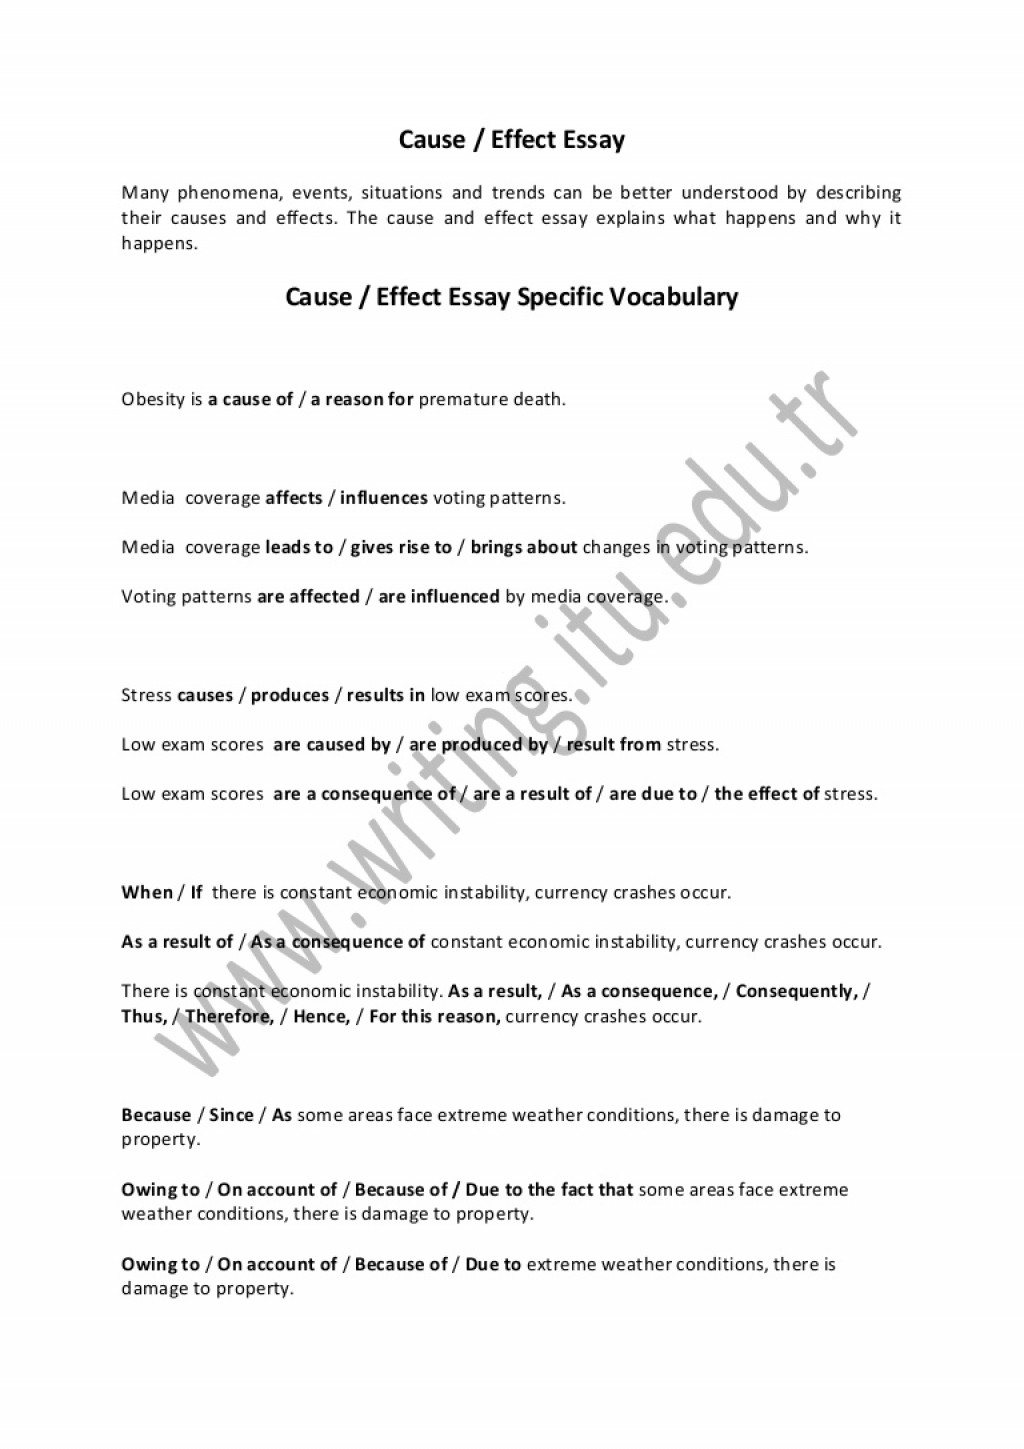 011 Essay Example Cause And Effect Causeandeffectessay Thumbnail Dreaded Samples Pdf Template Free Large